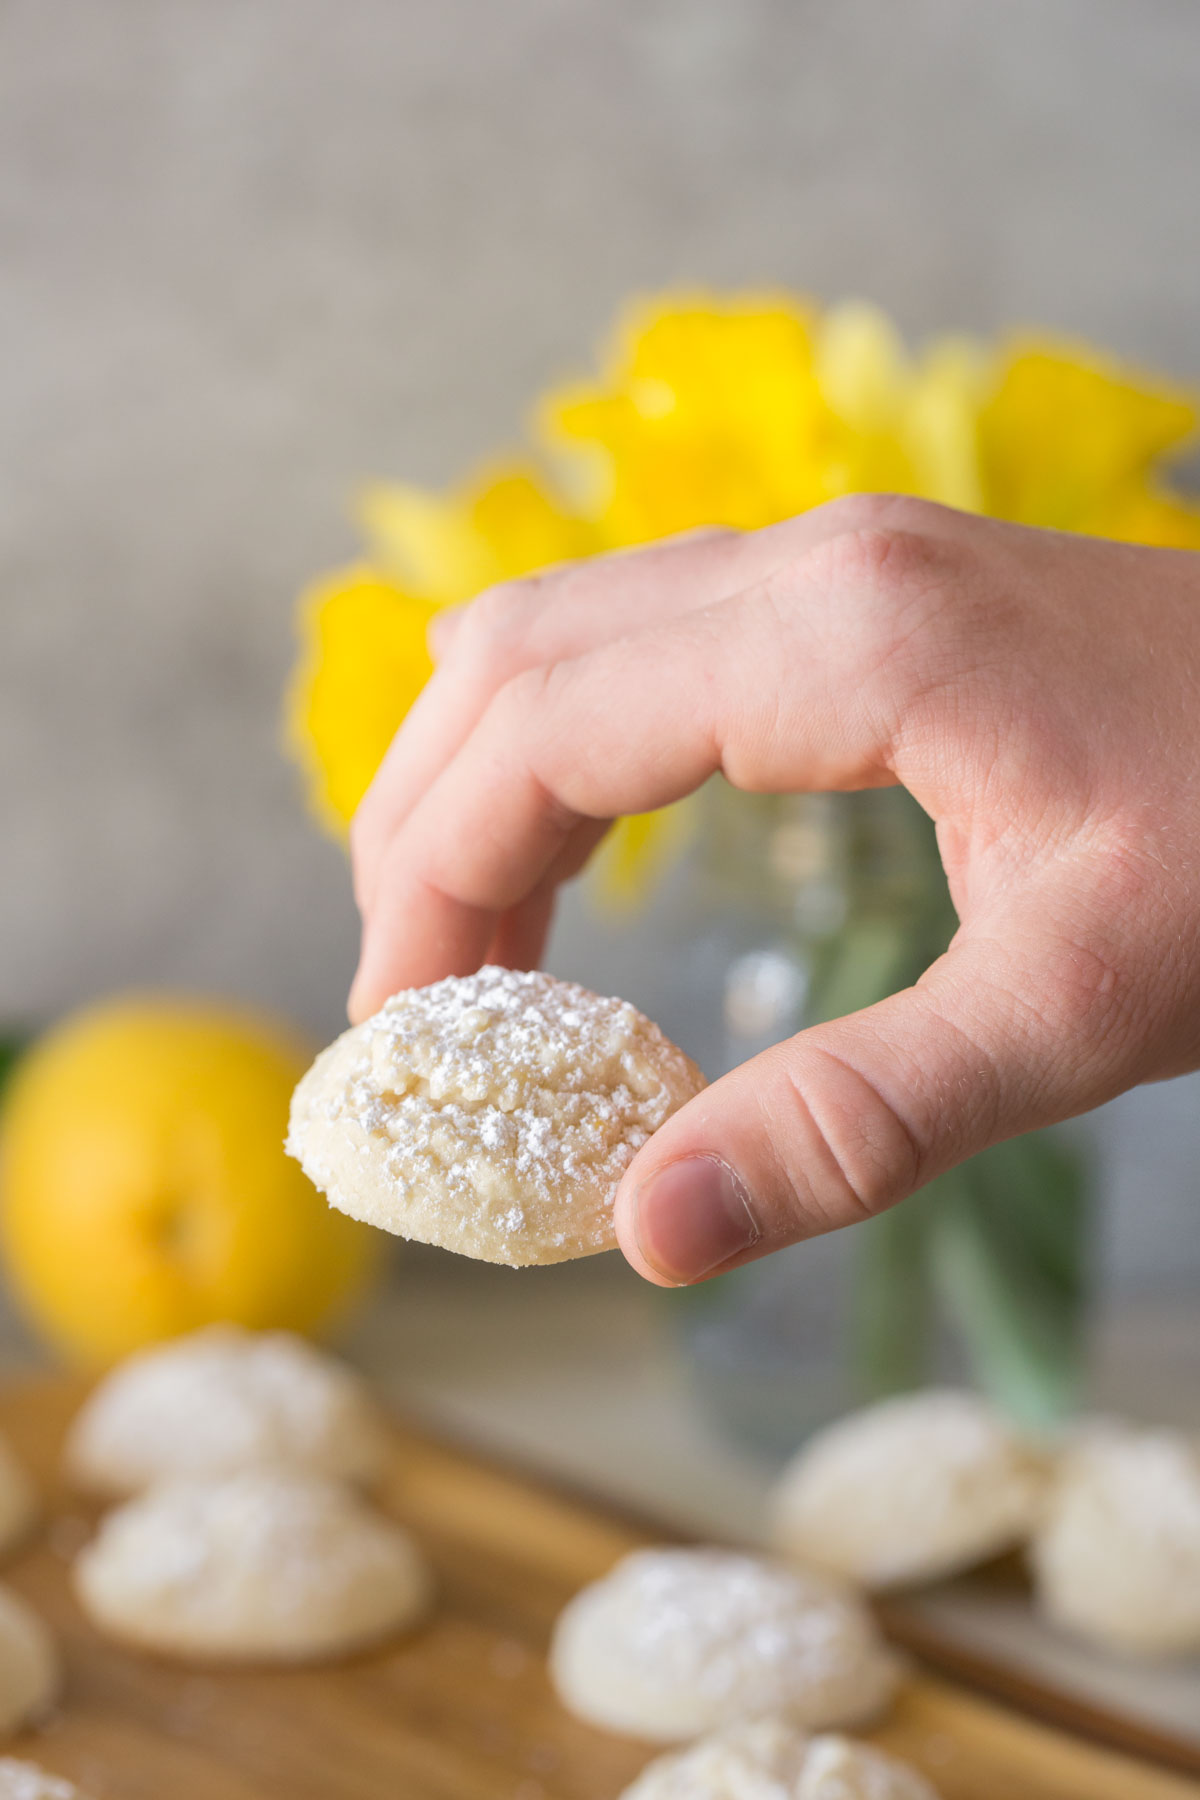 Hand holding Lemon Cookie with yellow daffodils in the background.